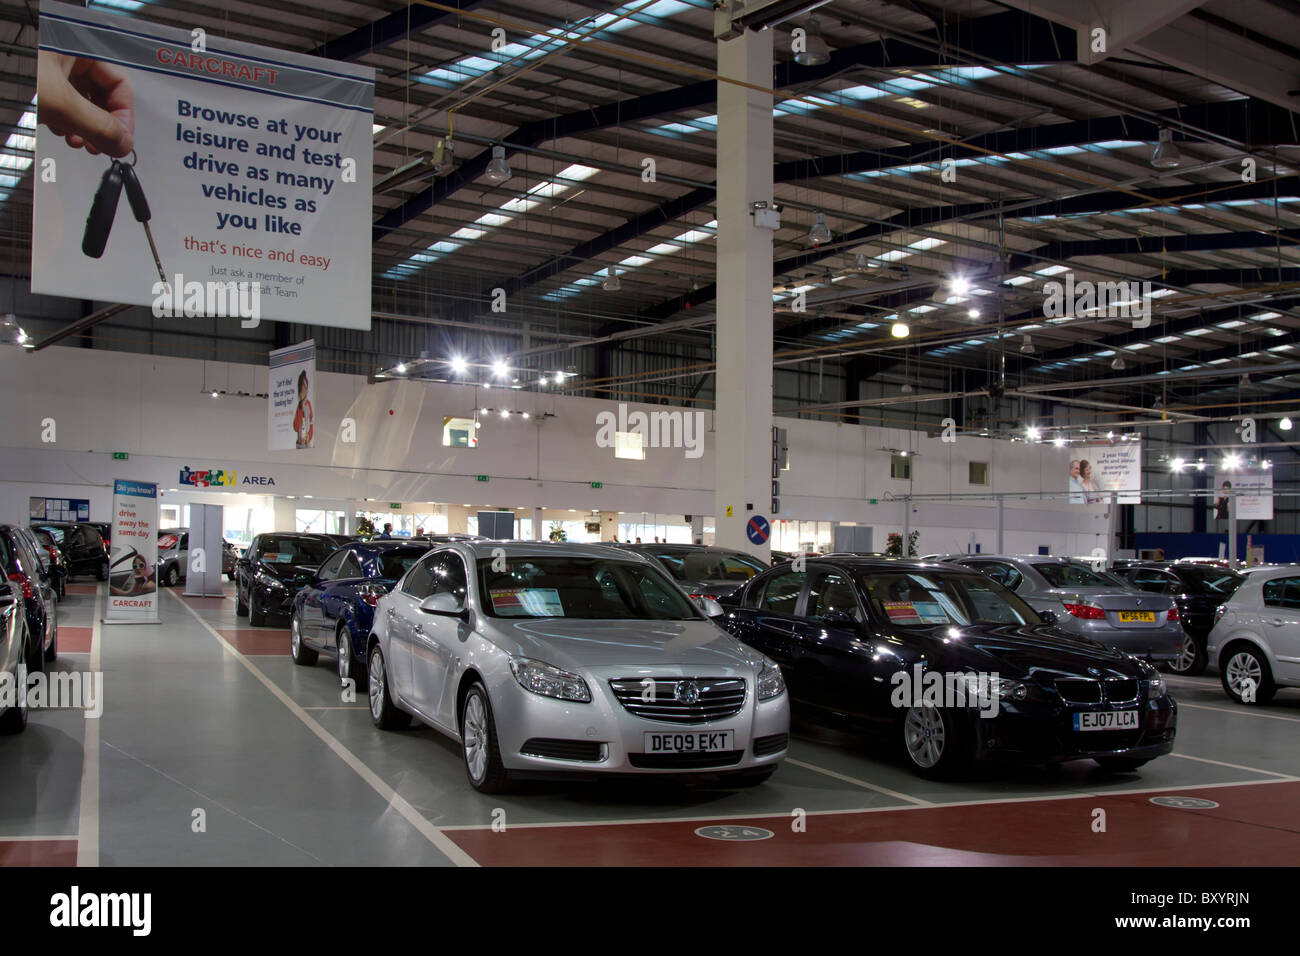 Used Car Dealers London >> Carcraft Used Car Showroom Enfield London Stock Photo 33802685